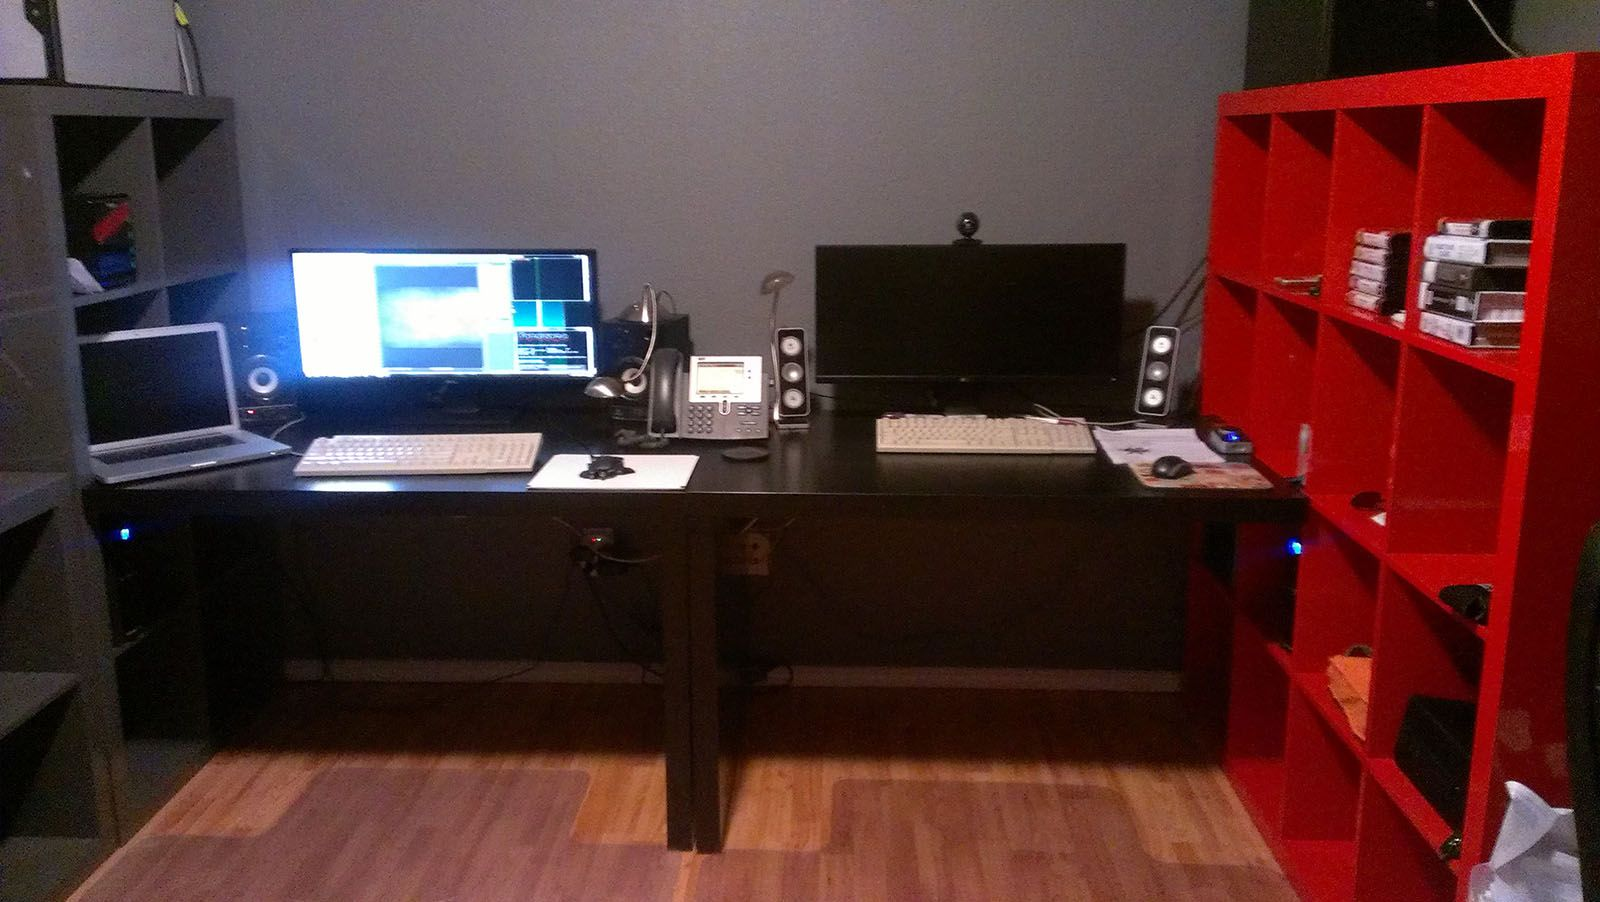 His Hers Battlestations In 2019 His And Her